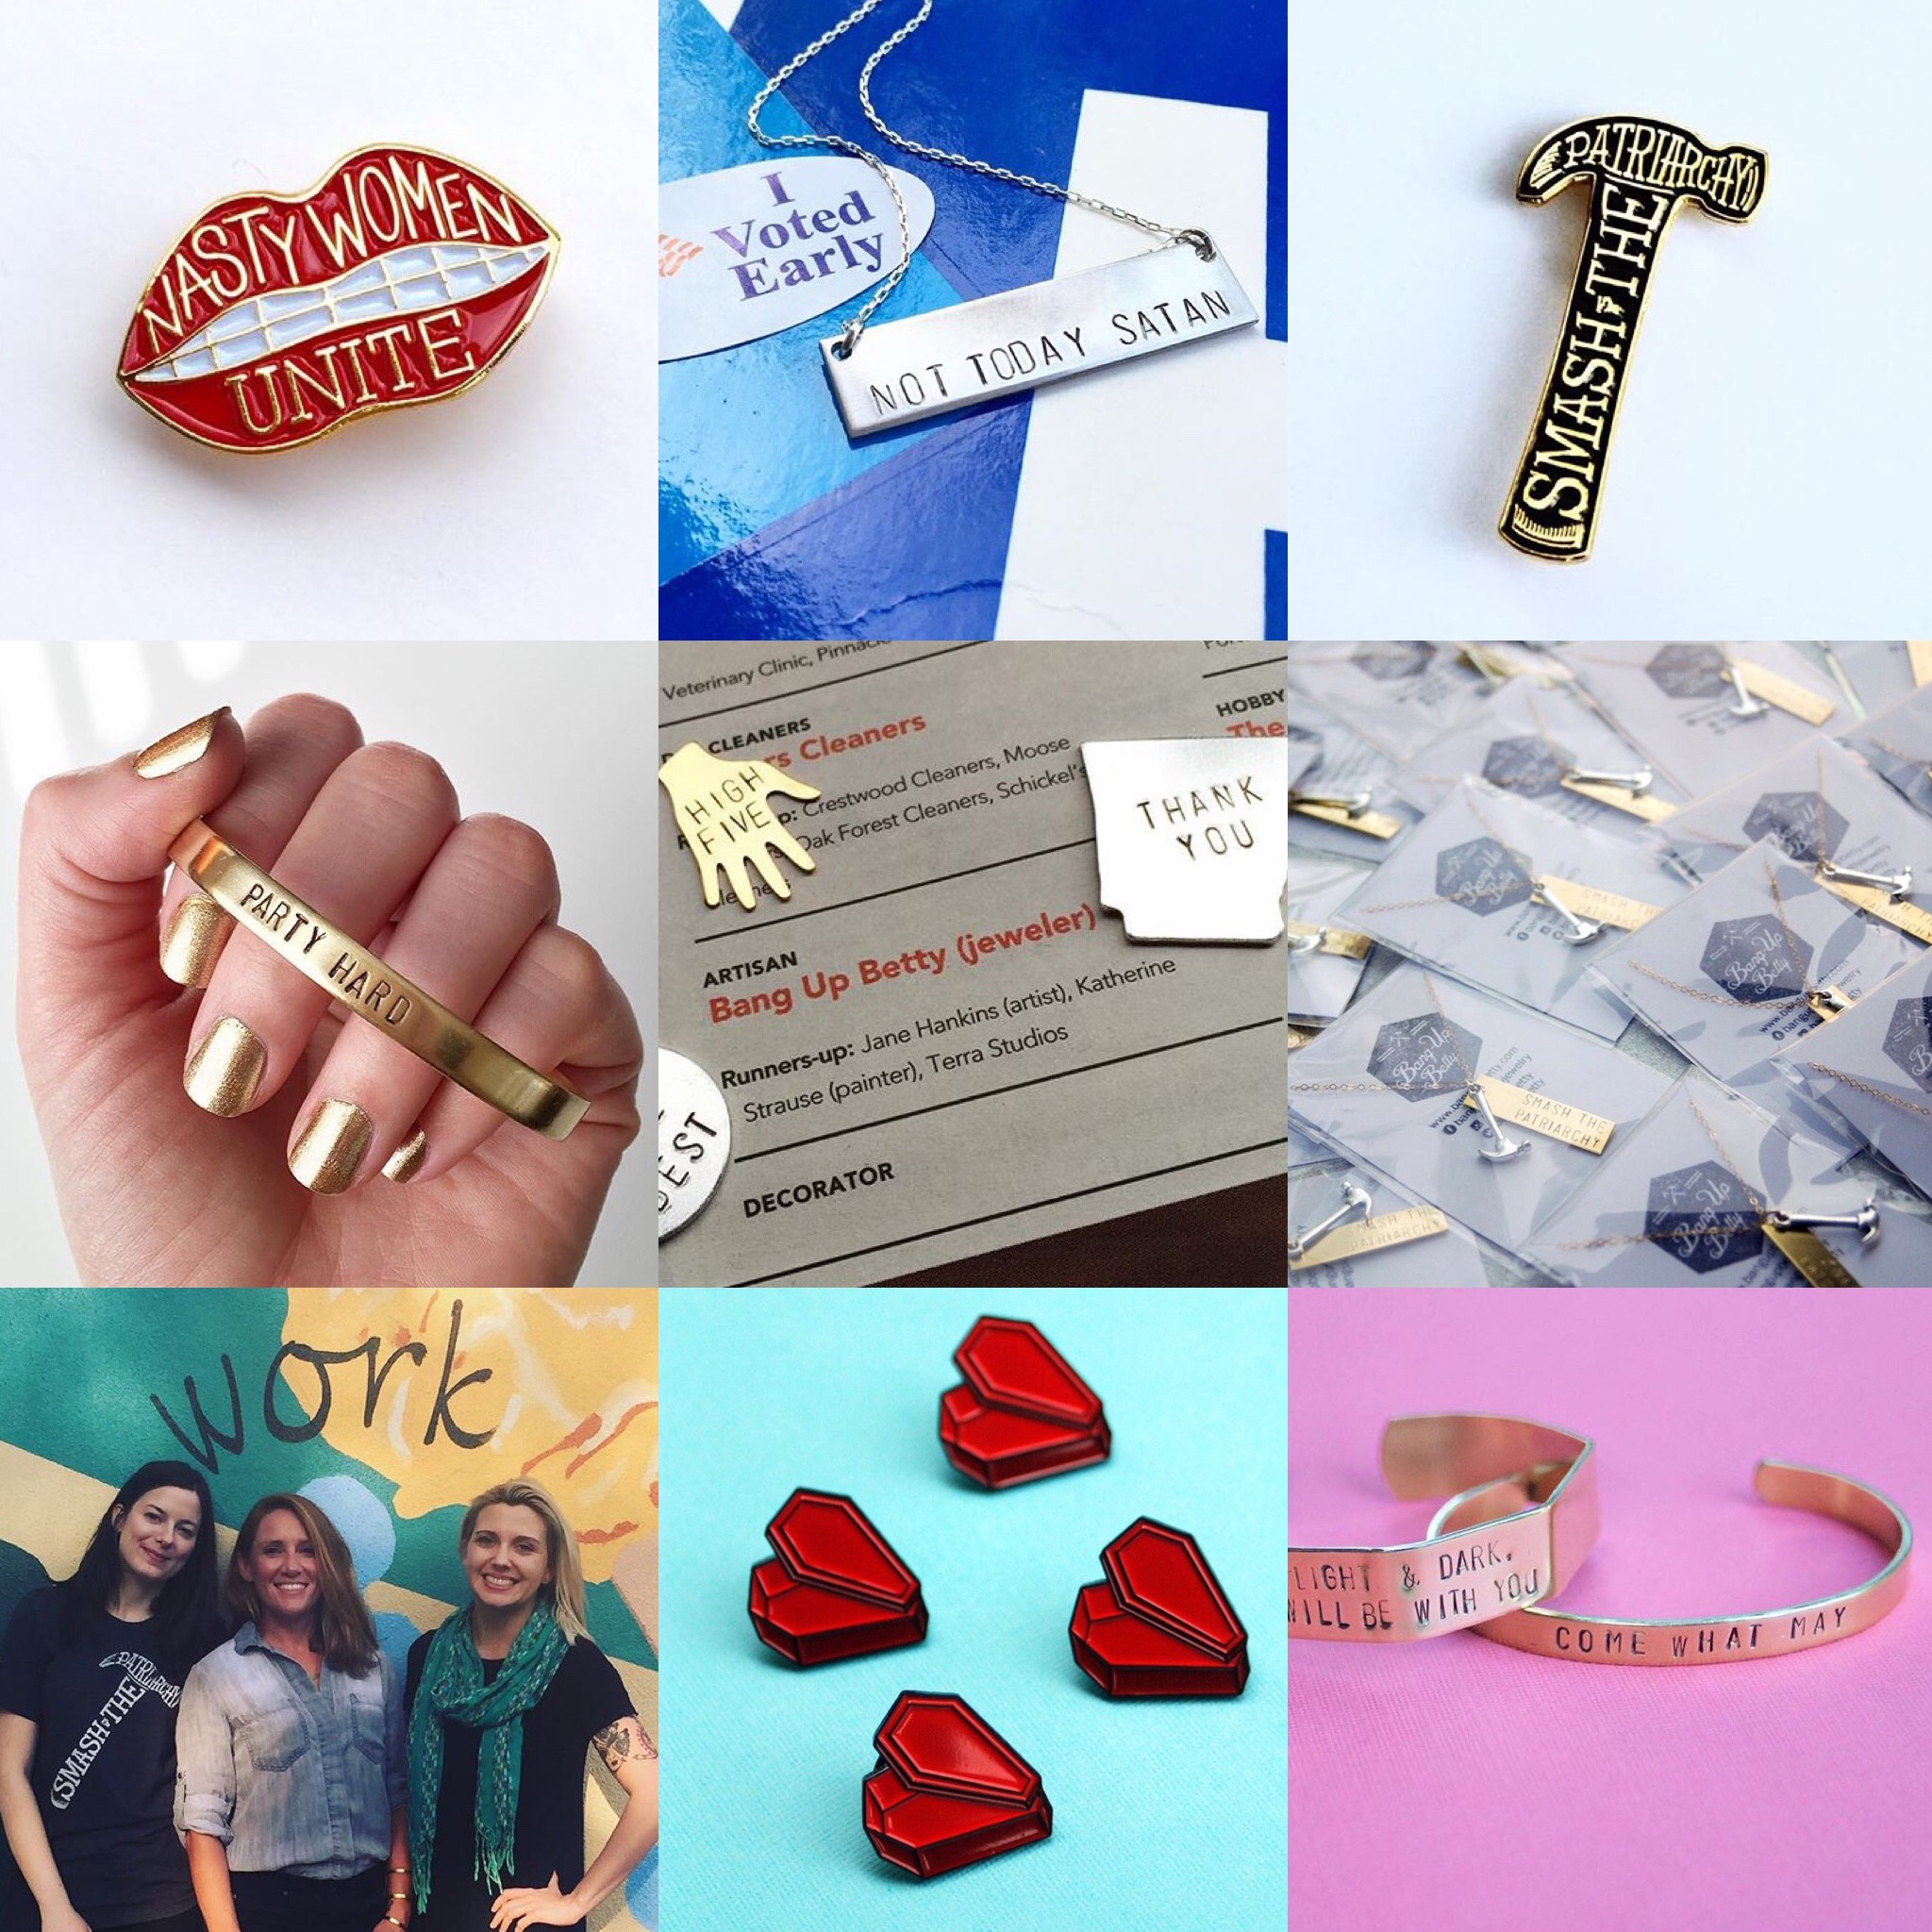 Creating the Nasty Women Unite Pin, Not Today Satan Necklace, Smash the Patriarchy Pin, and custom brass jewelry to benefit Arkansas nonprofits were just a few highlights in this feminist Arkansas jewelry maker's year. Thanks for your support in 2016!